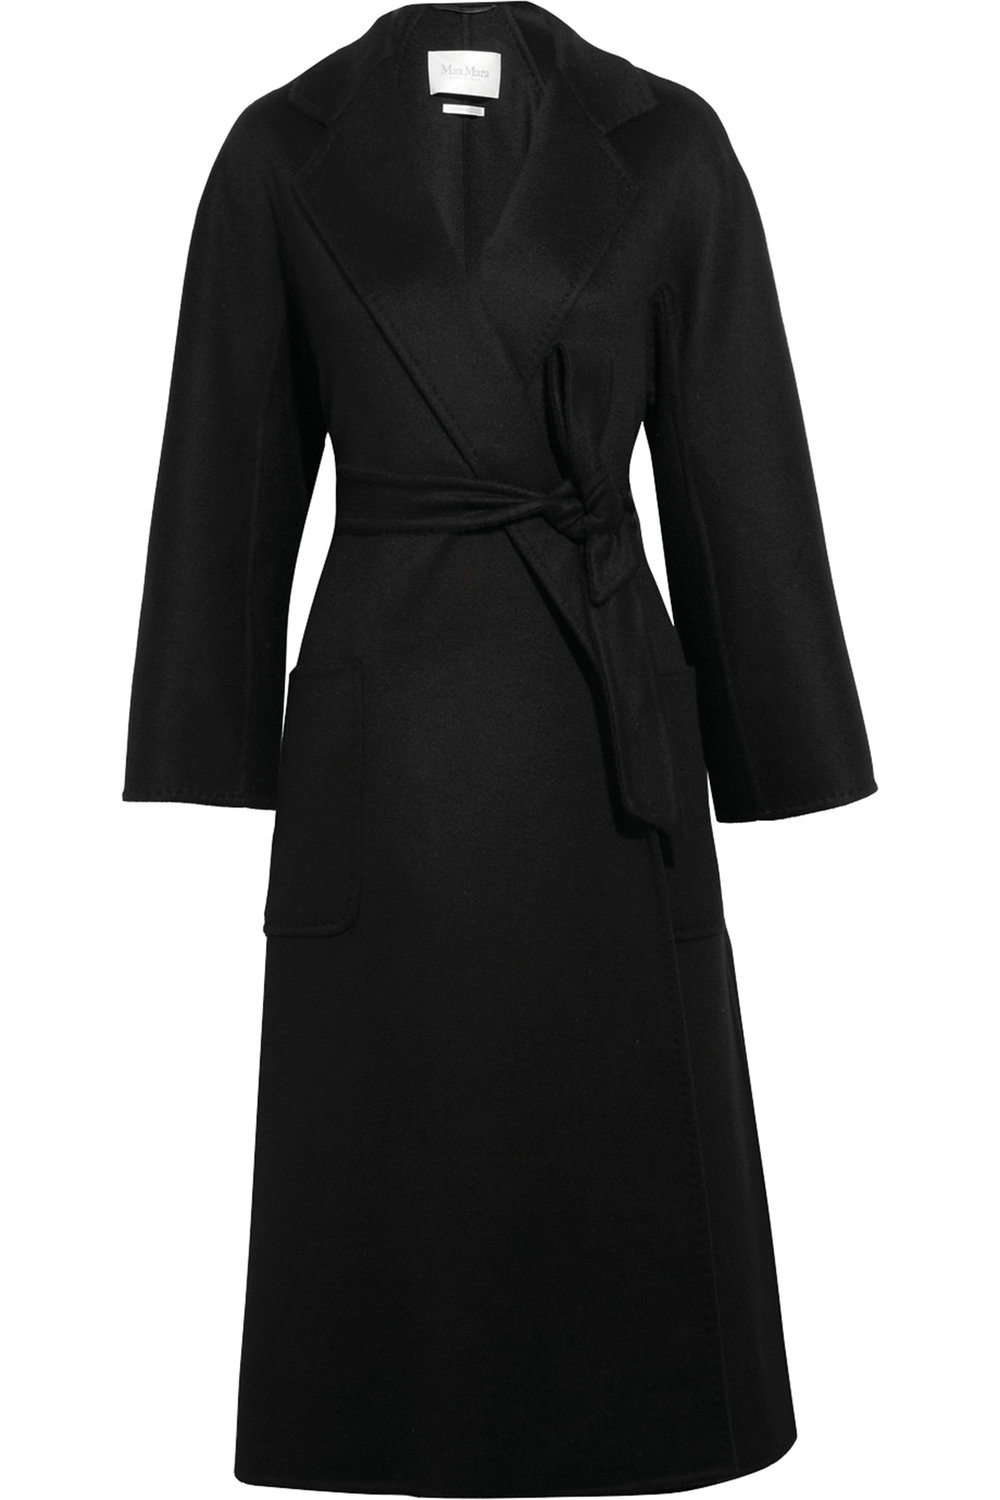 Pure Wool Coat by Max Mara $1,950,  maxmara.com